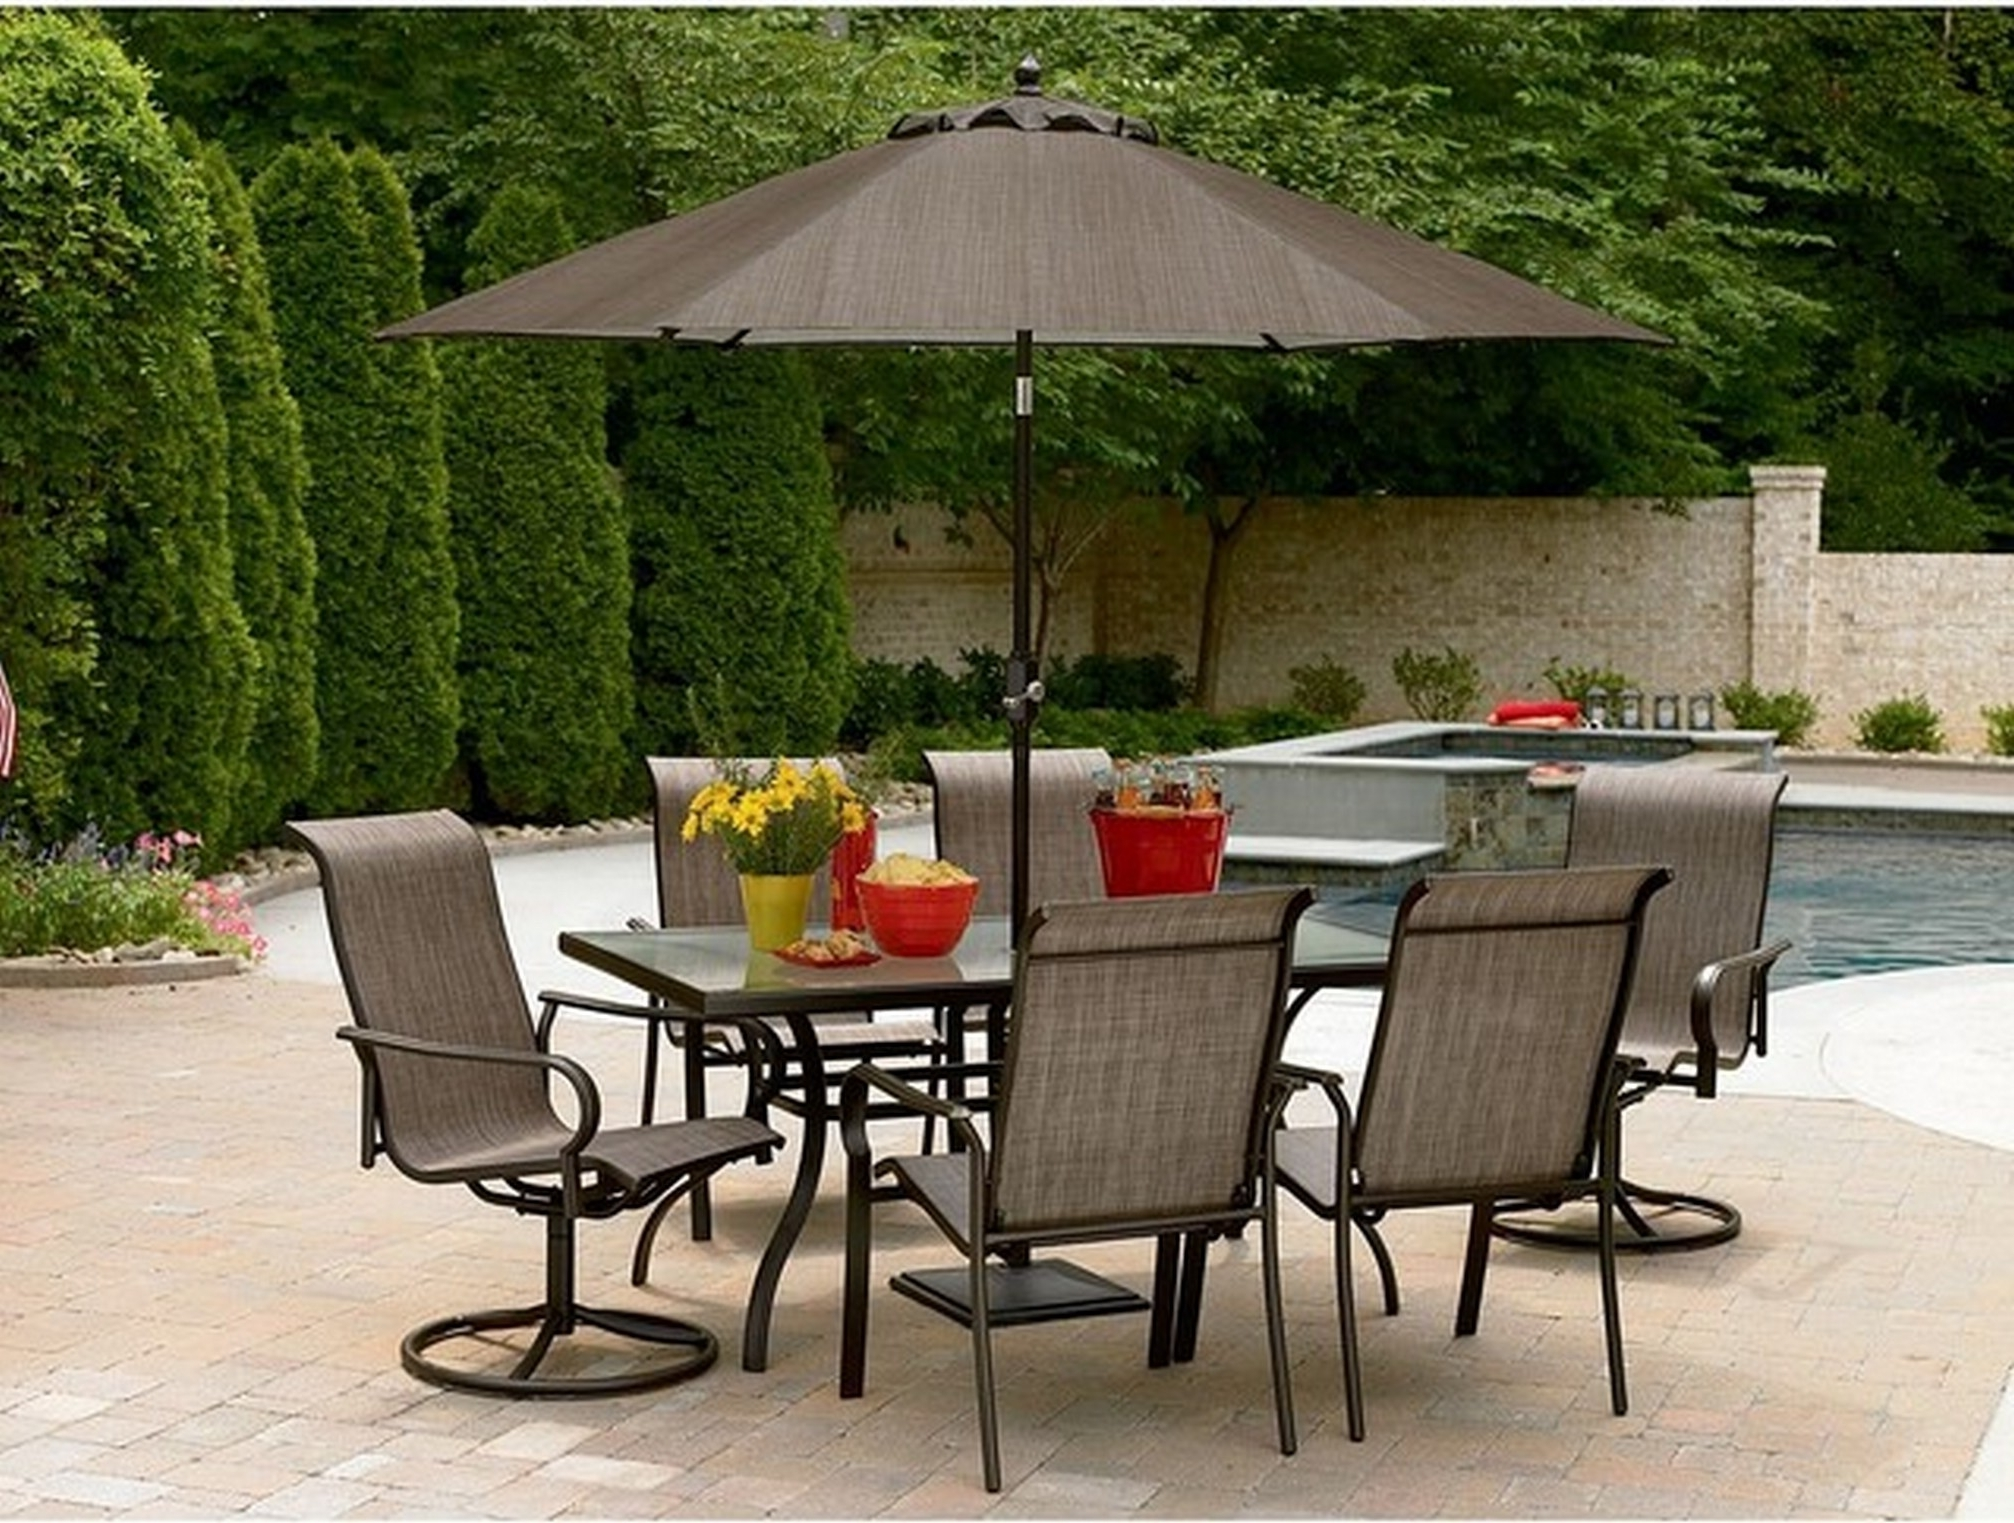 Patio Conversation Sets With Umbrella Regarding Popular Affordable Patio Furniture Sets – Irenerecoverymap (View 2 of 20)